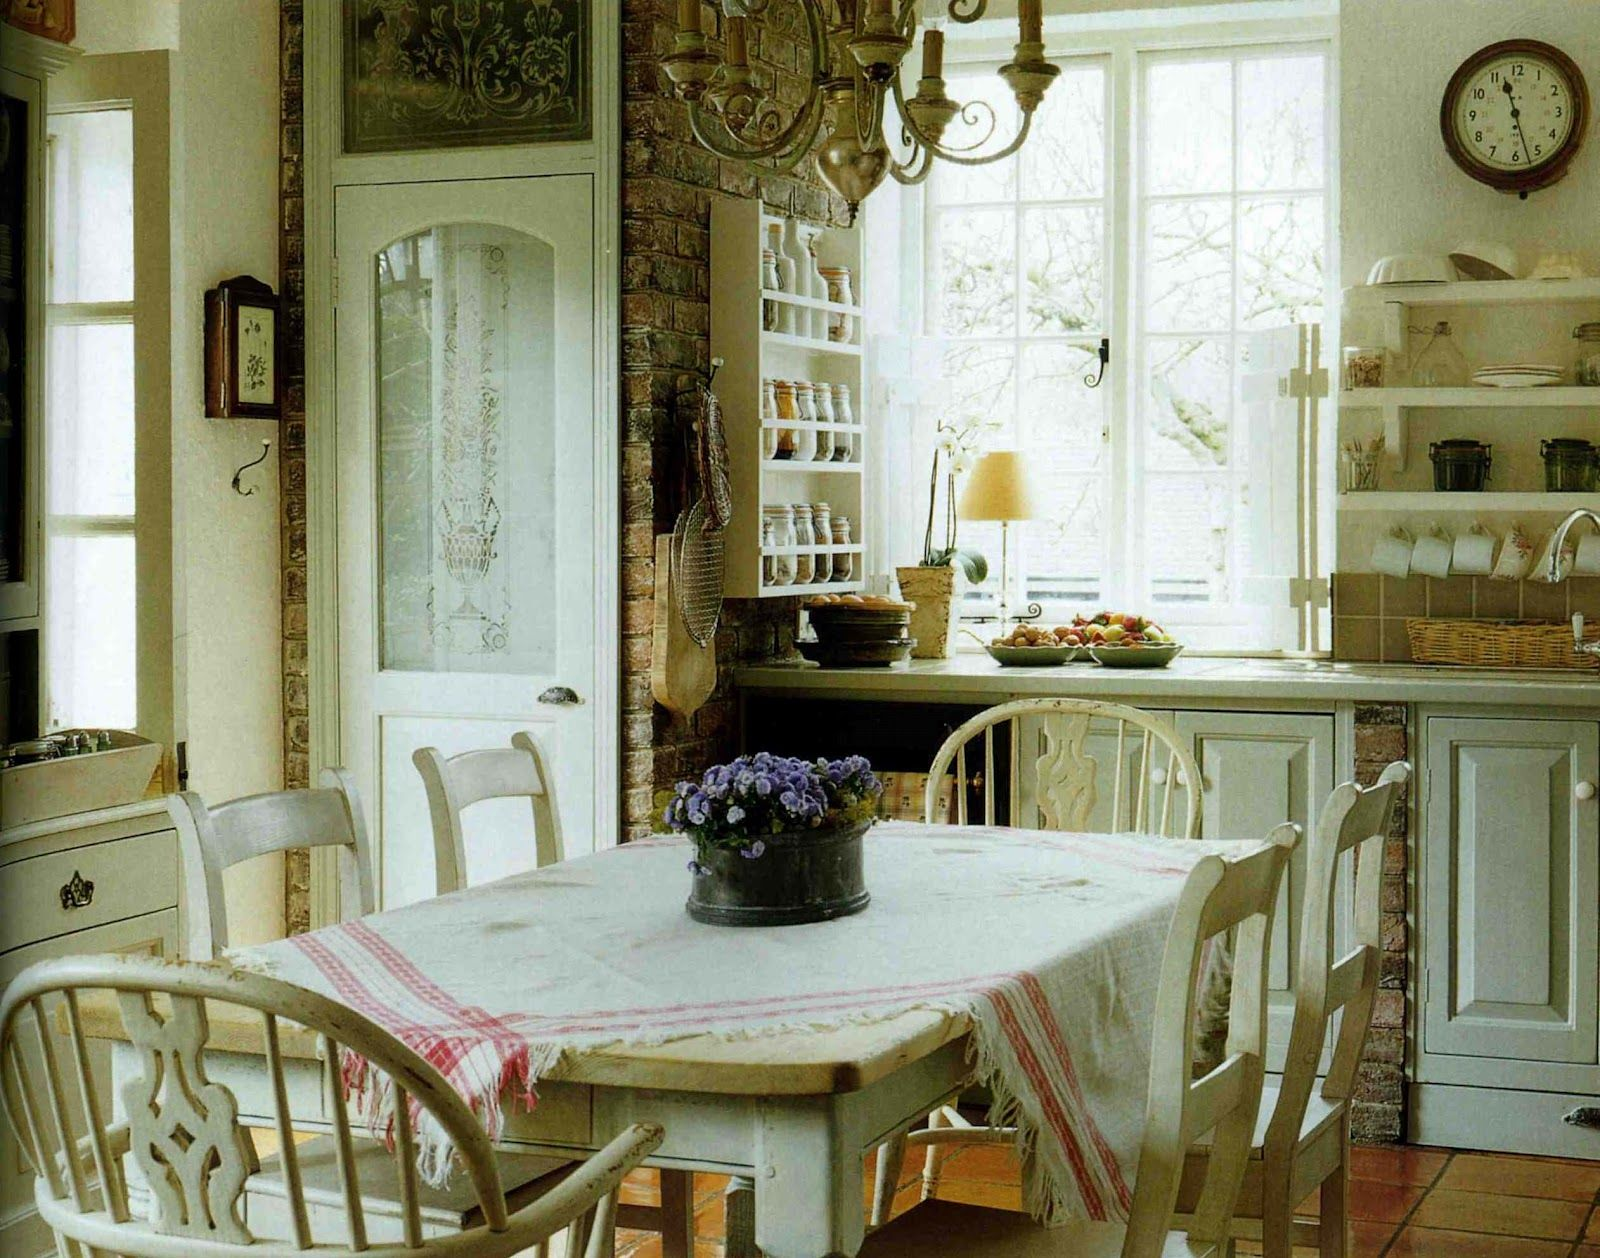 English Home Magazine. Suspiciously Like The Kitchen In Lionelu0027s Country  Home In The British TV